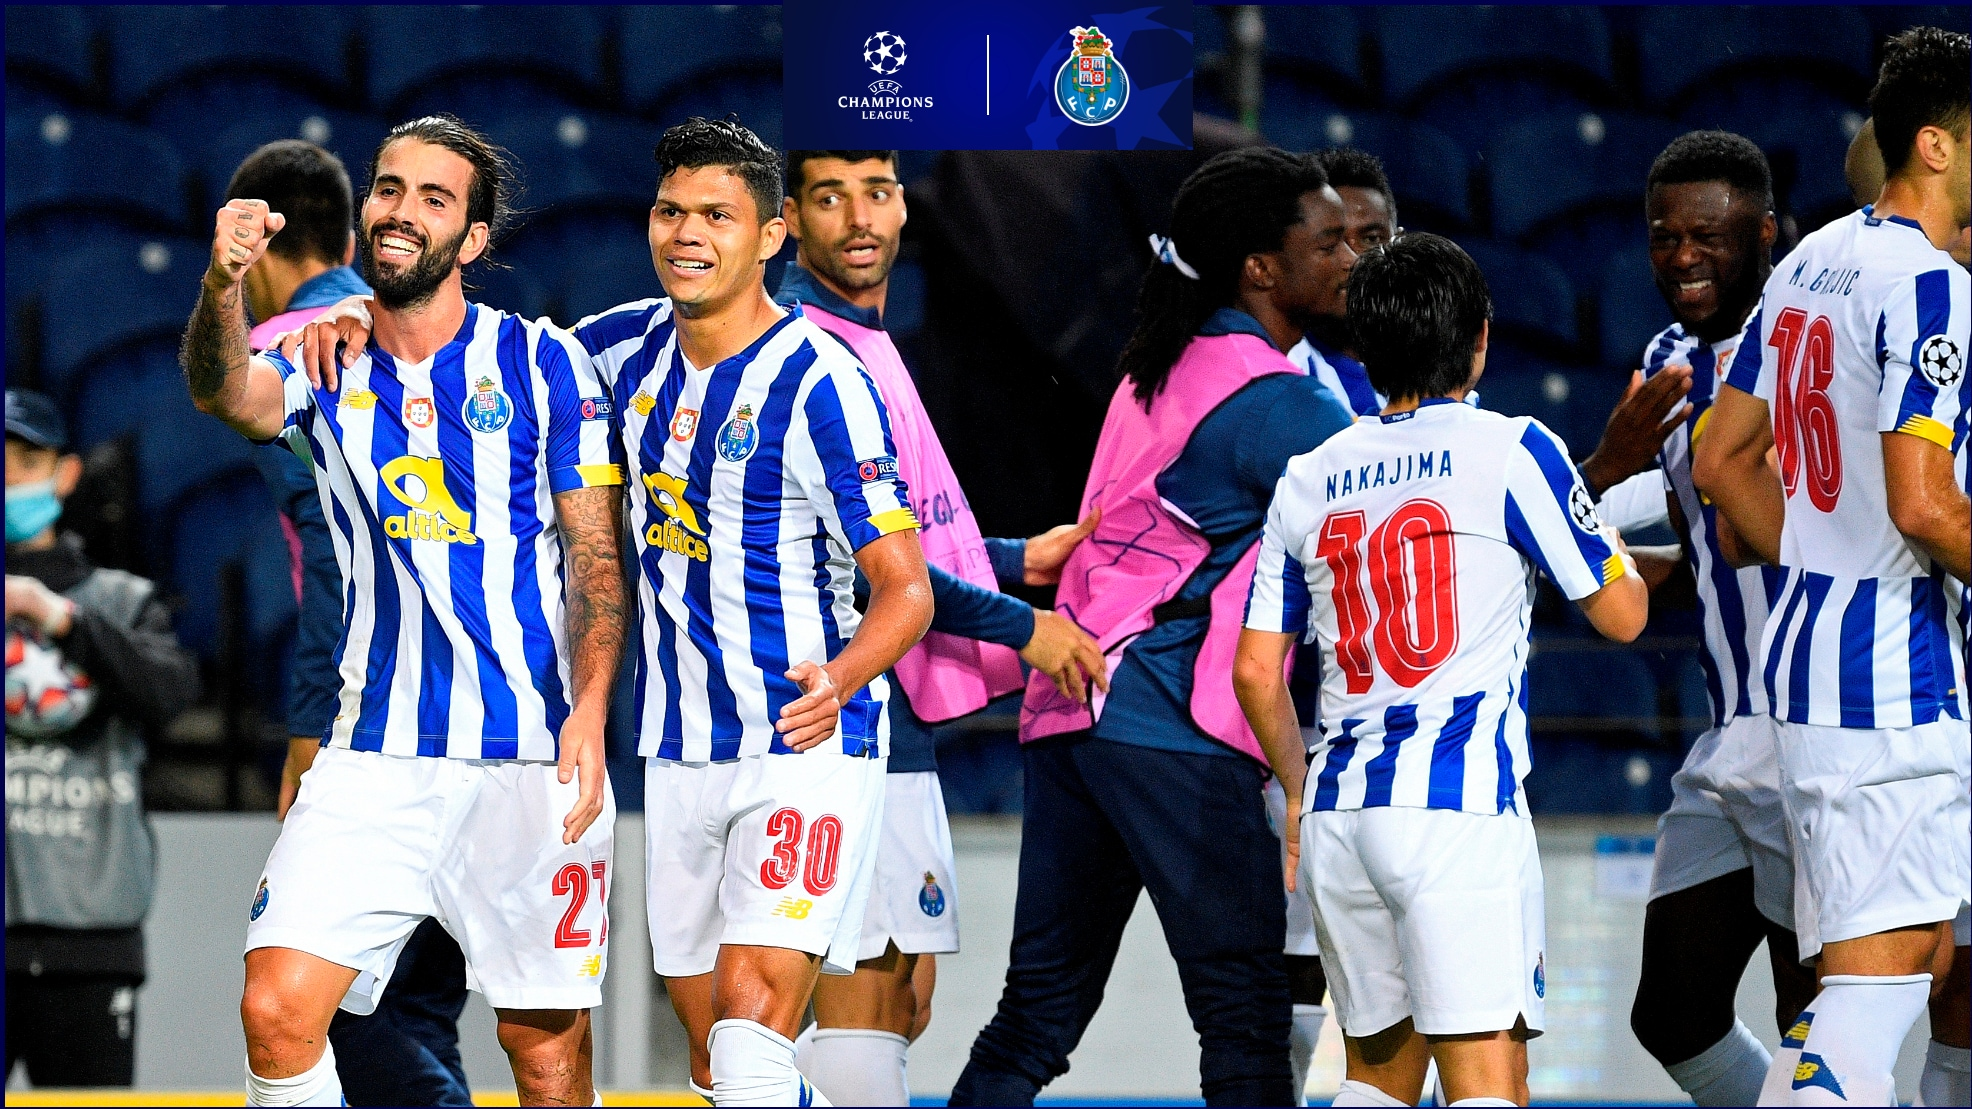 Recap: Porto run a tight ship to qualify